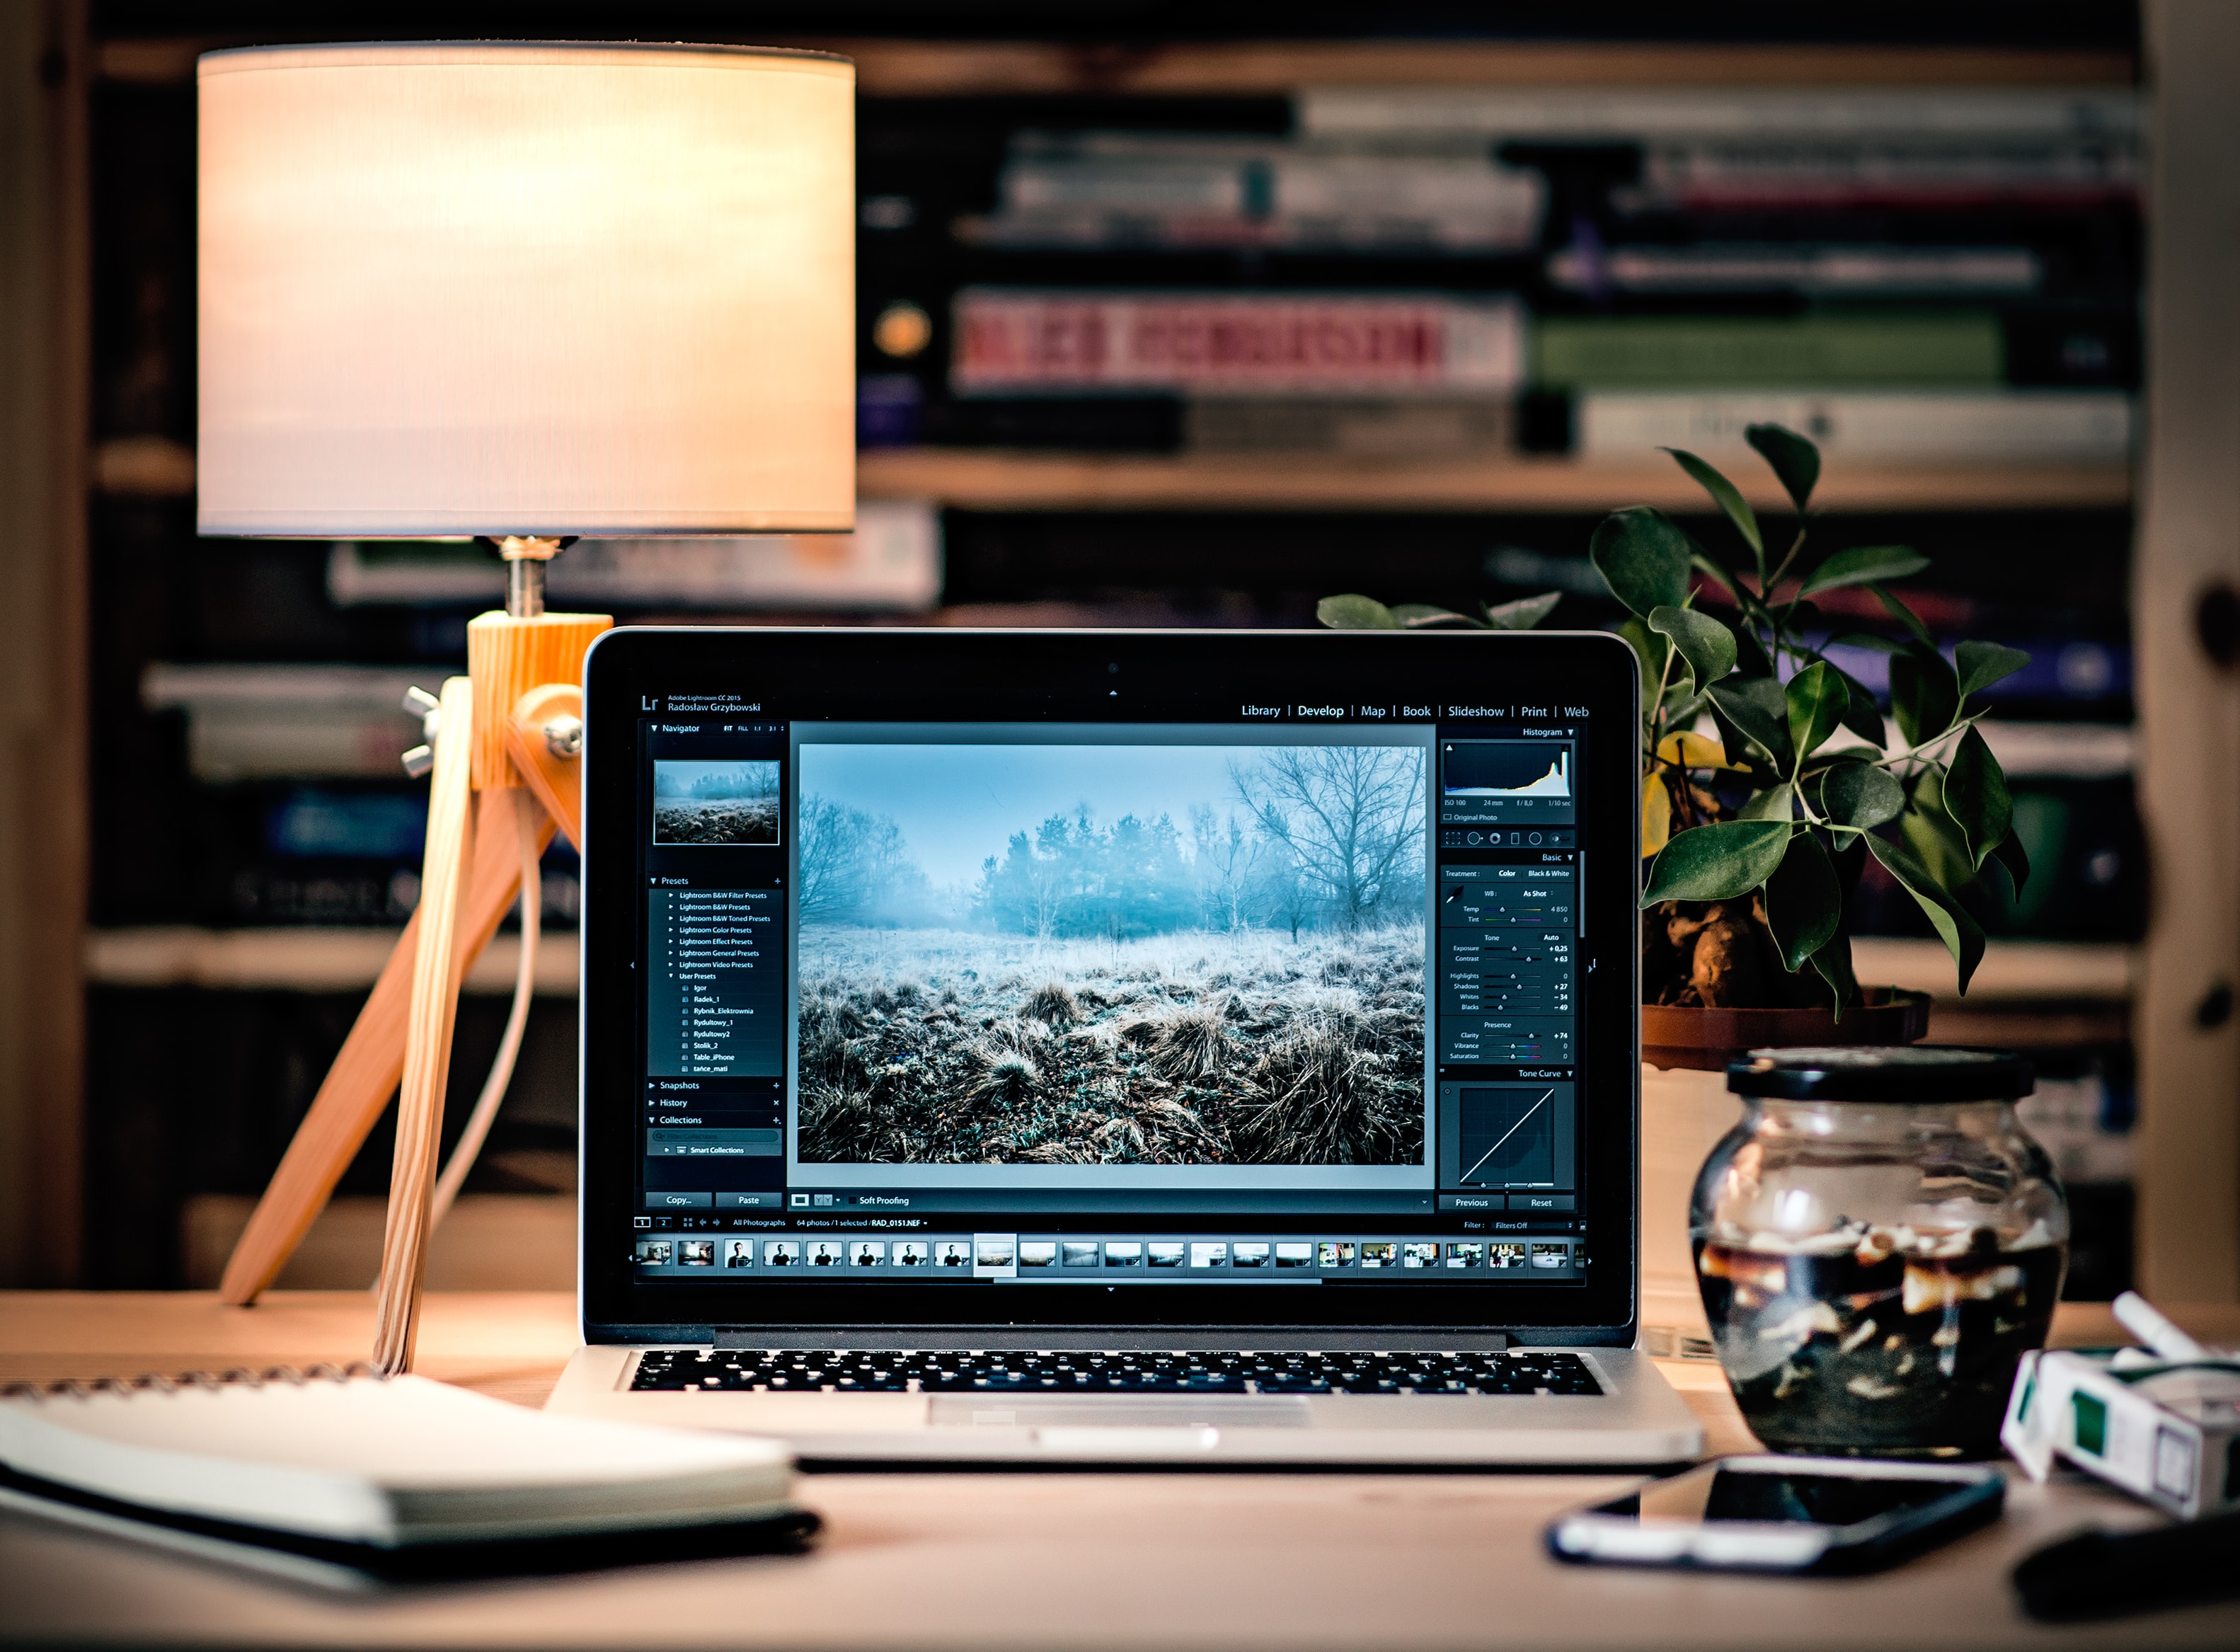 A MacBook with photo editing software on a busy desk